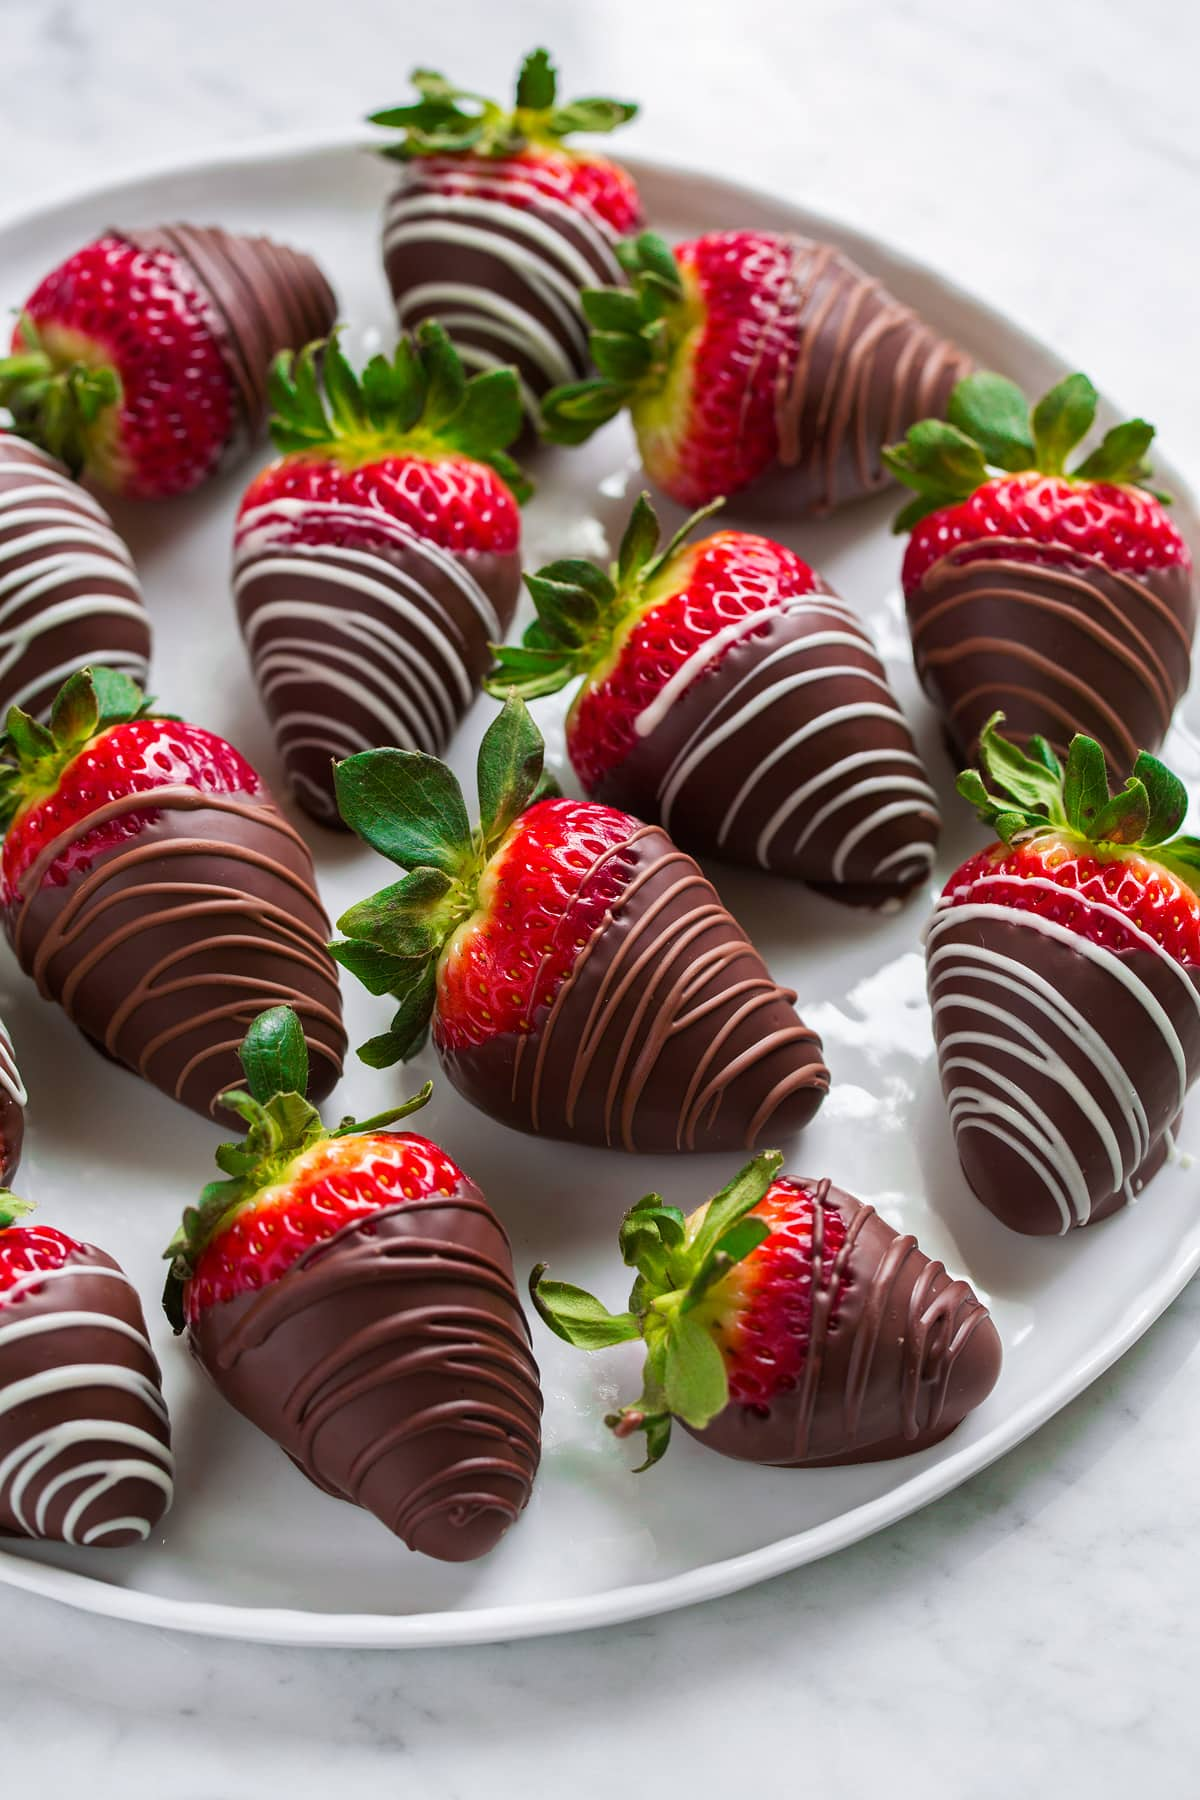 Chocolate Covered Strawberries - Cooking Classy